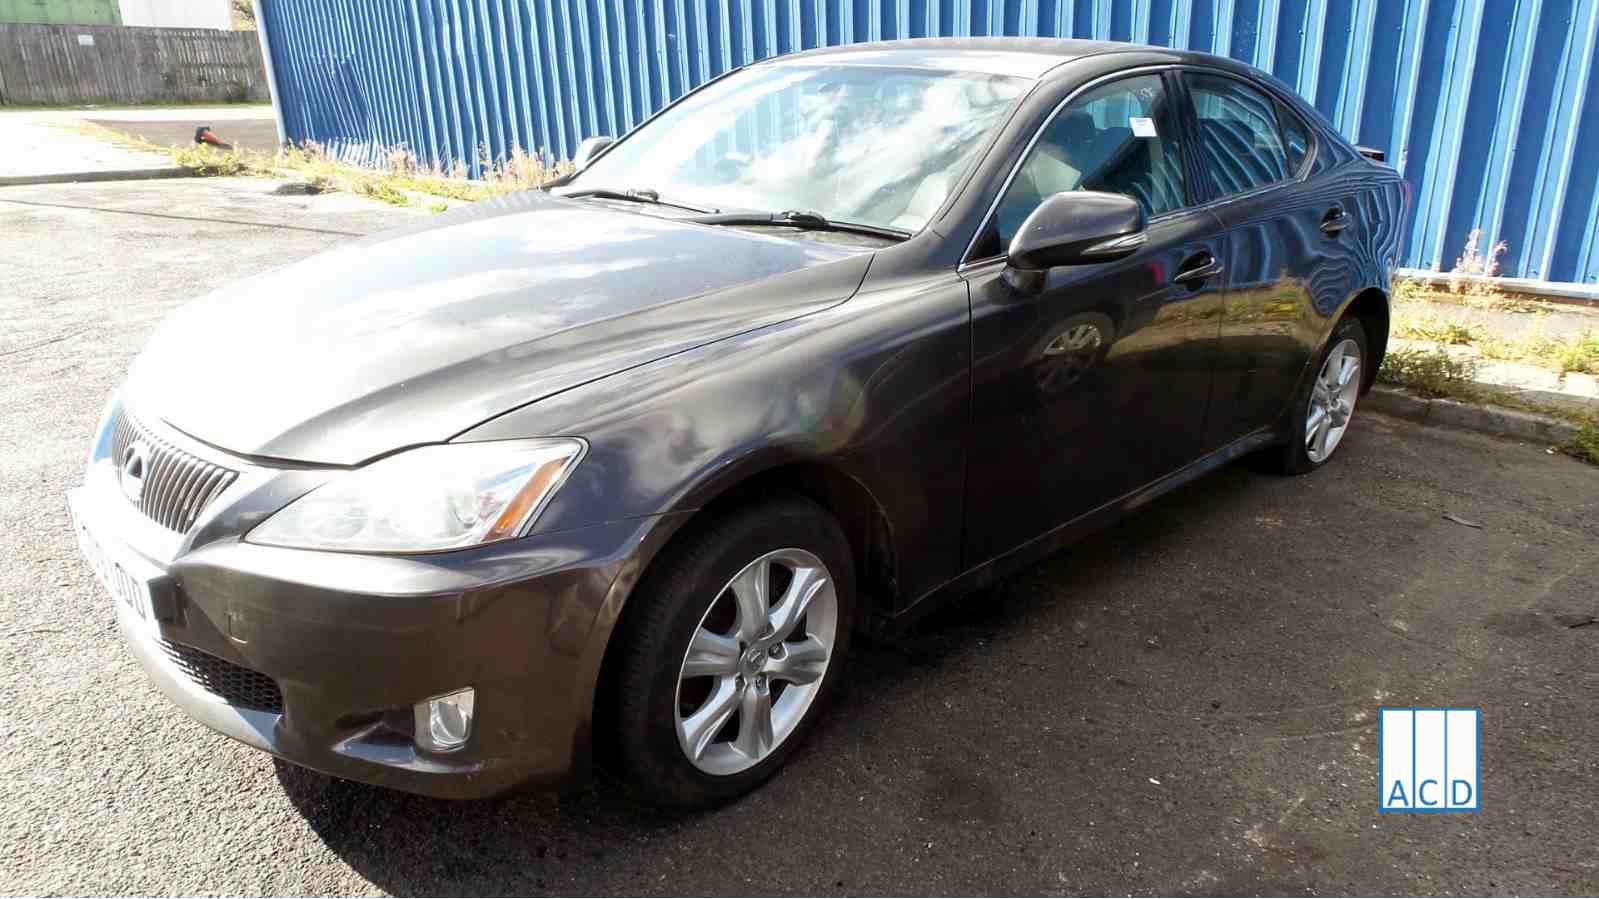 Lexus 220D SE 2.2L Diesel 6-speed manual 2009 #2596 01